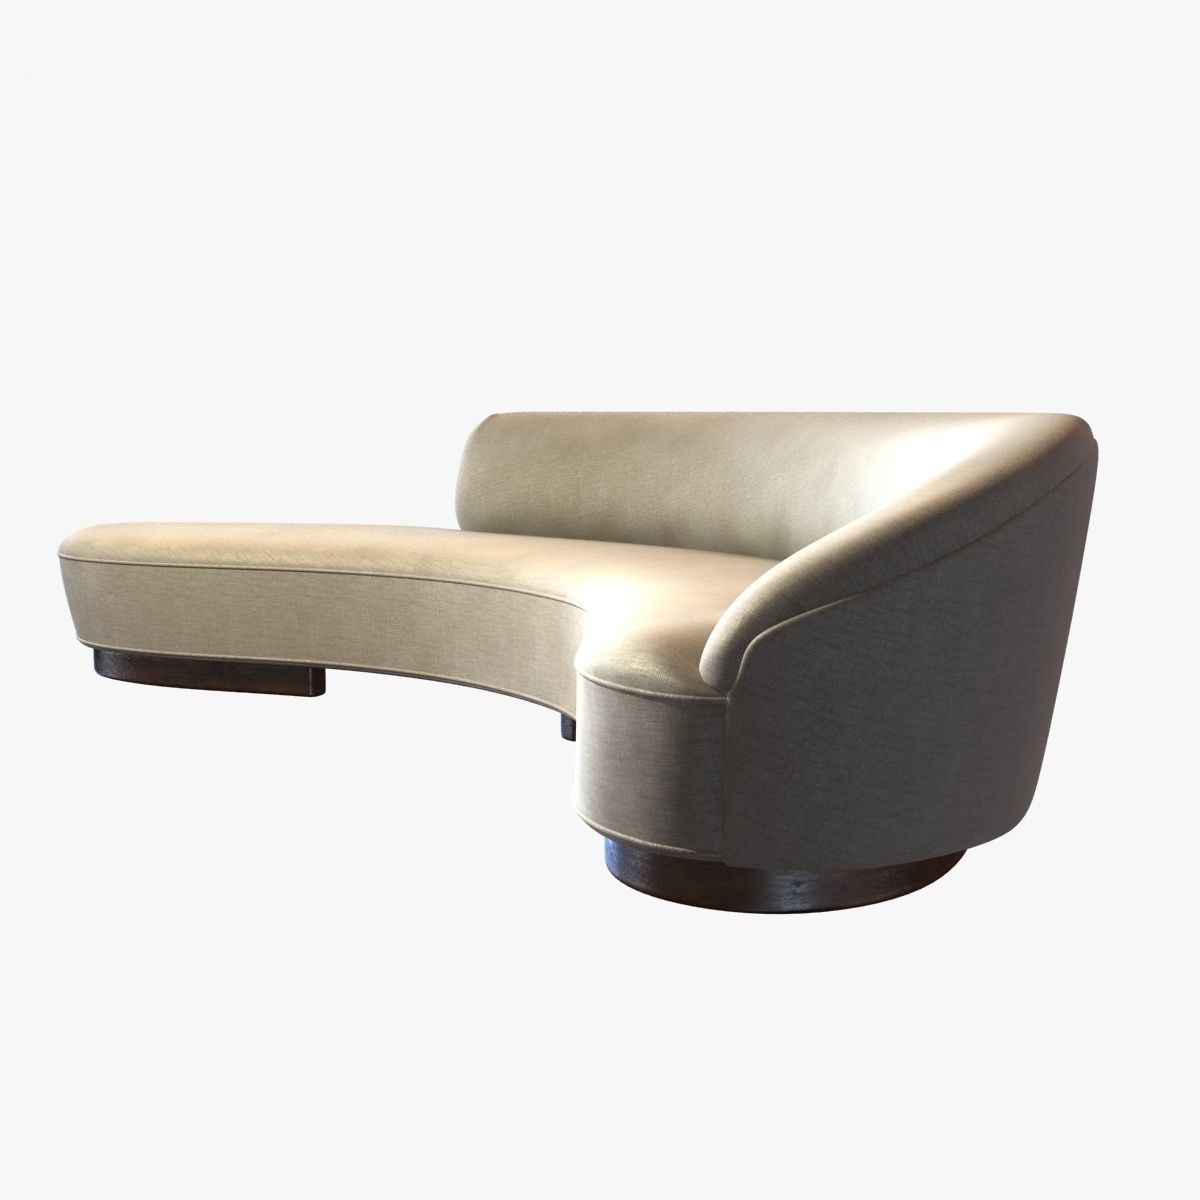 ... Vladimir Kagan Freeform Curved Sofa With Arm 3d Model Max Obj Mtl 3ds  Fbx Stl 3 ...